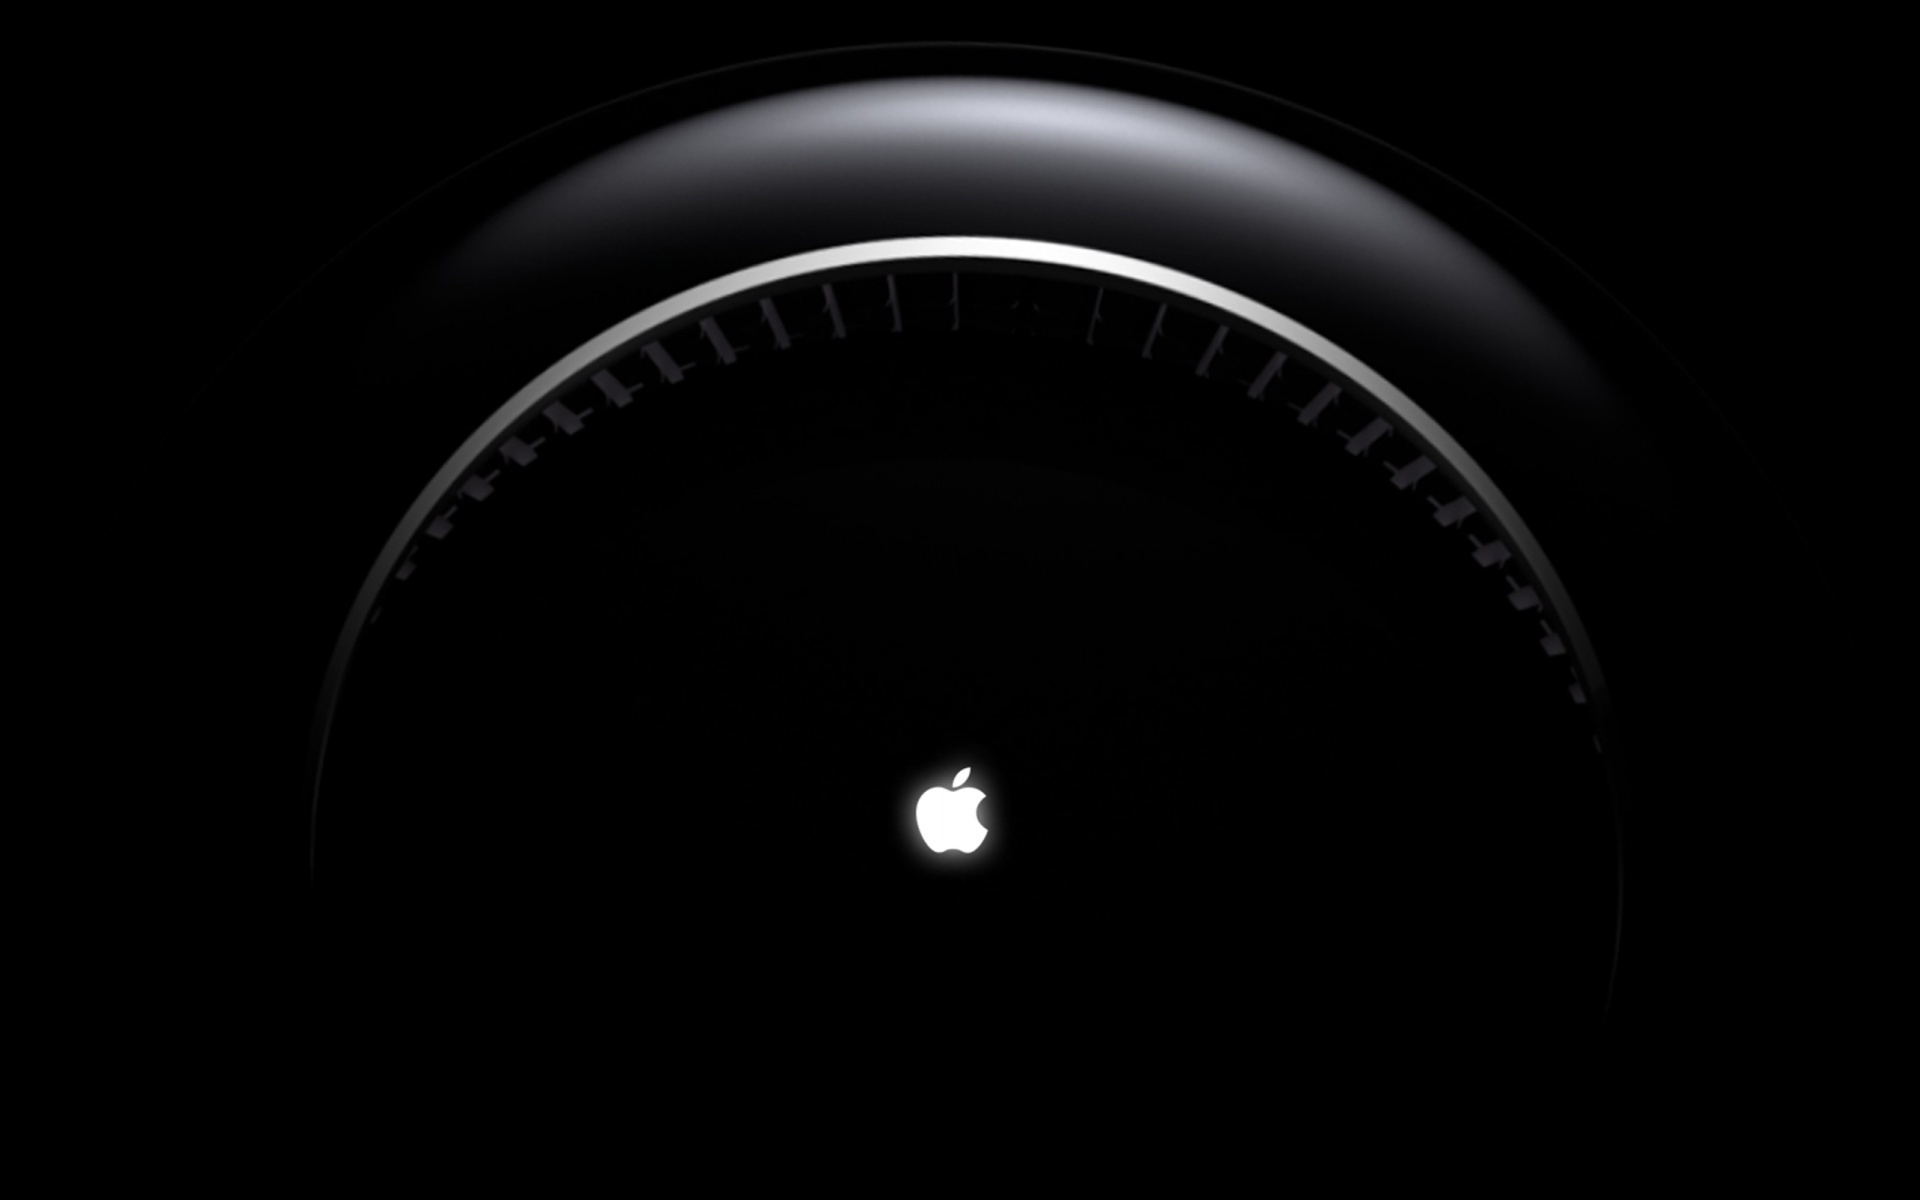 1920x1200 black mac pro 2013 desktop pc and mac wallpaper